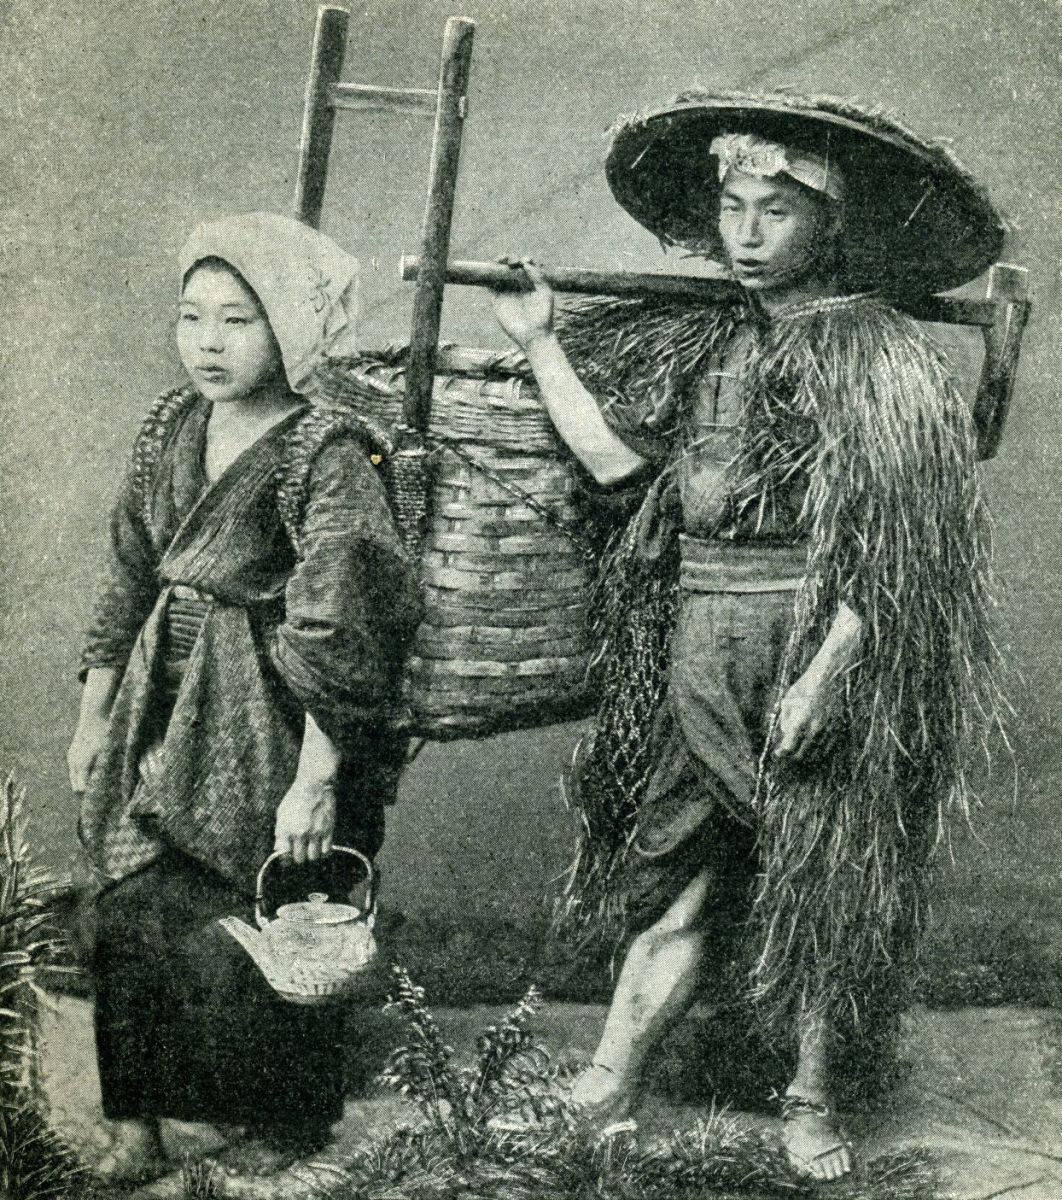 The Peasant and Japanese National Identity